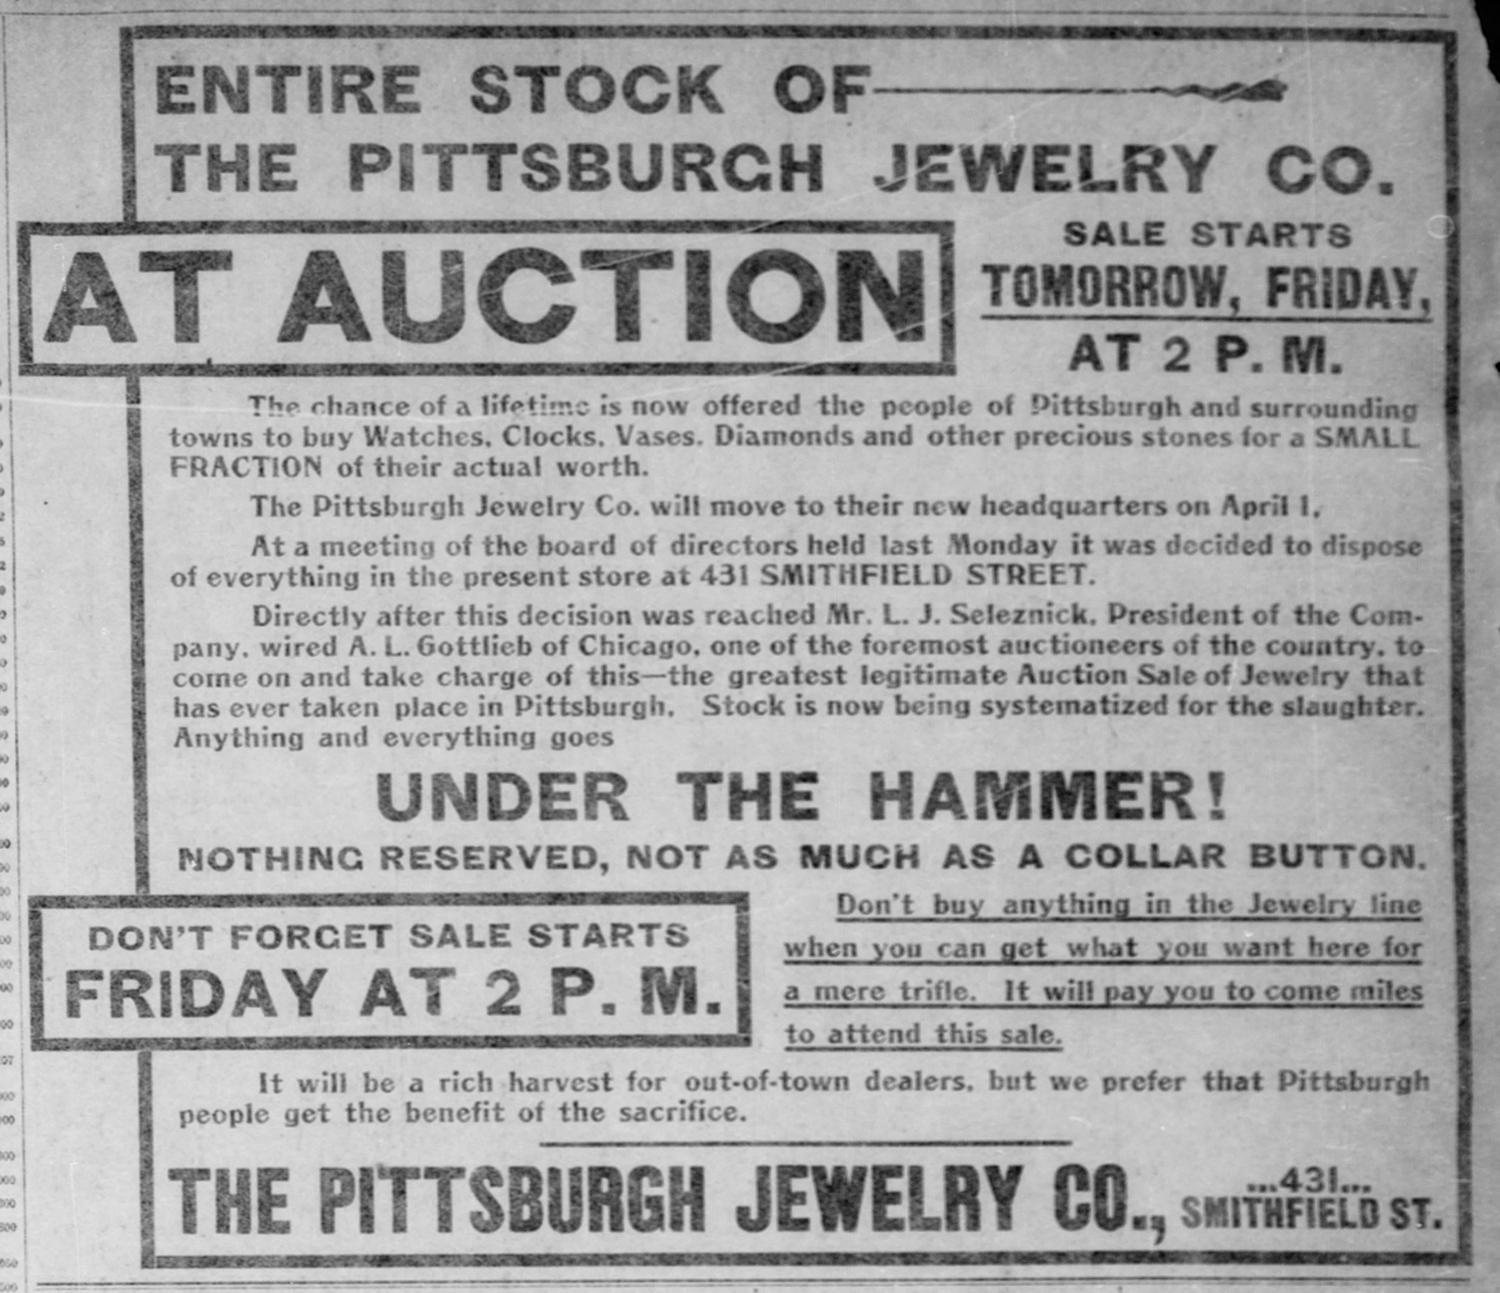 Auction advertisement for Lewis Seleznick's Pittsburgh Jewelry Company, 1901. The auction was probably related to the store's relocation from 431 Smithfield Street to larger accommodations at 443 Smithfield Street later that year. Pittsburgh Post-Gazette, February 28, 1901.